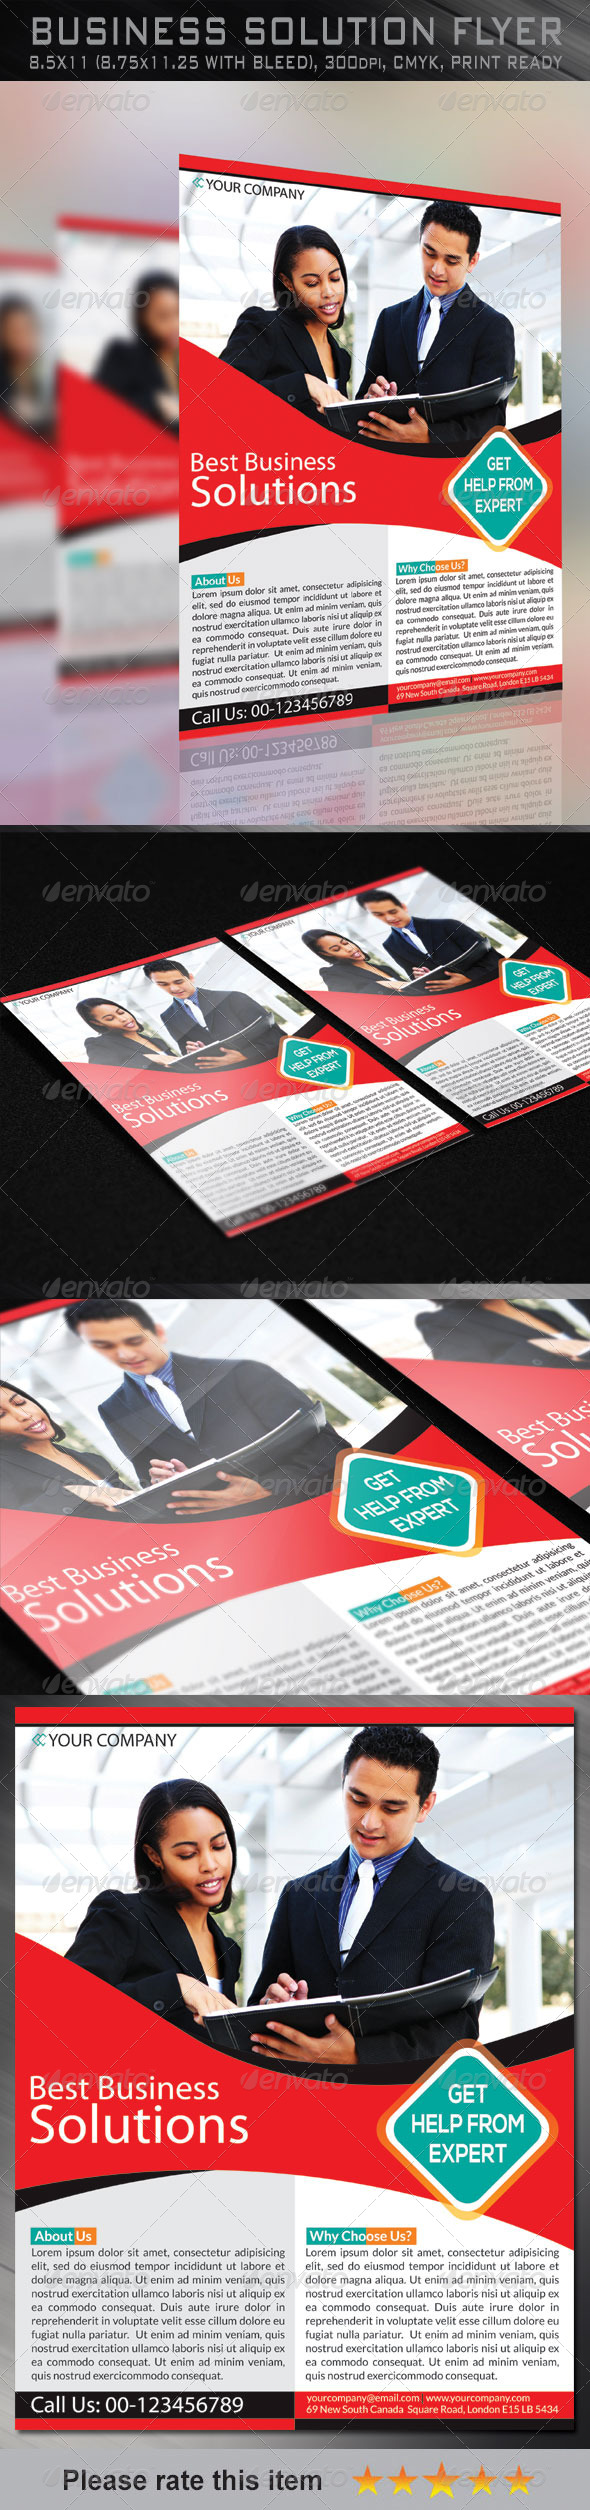 GraphicRiver Business Solution Corporate Flyer 6494602